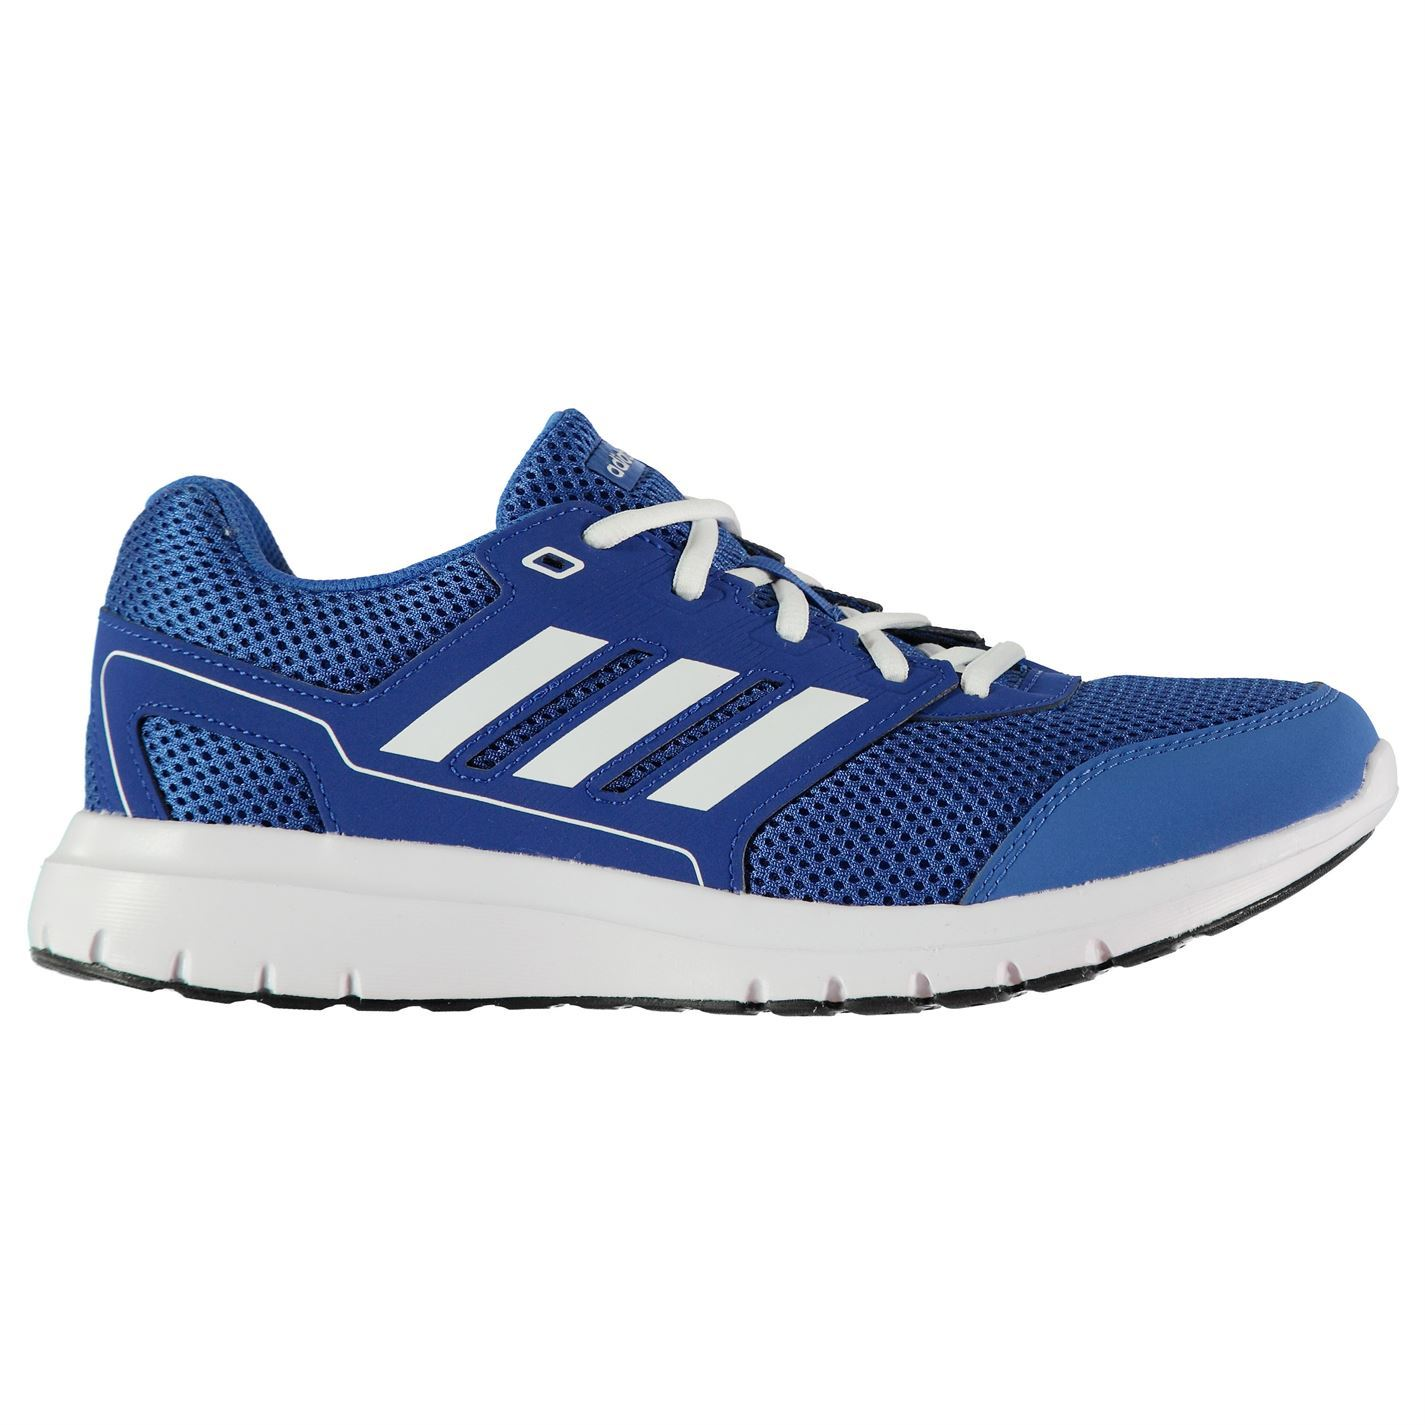 adidas-Mens-Duramo-Lite-2-Trainers-Runners-Lace-